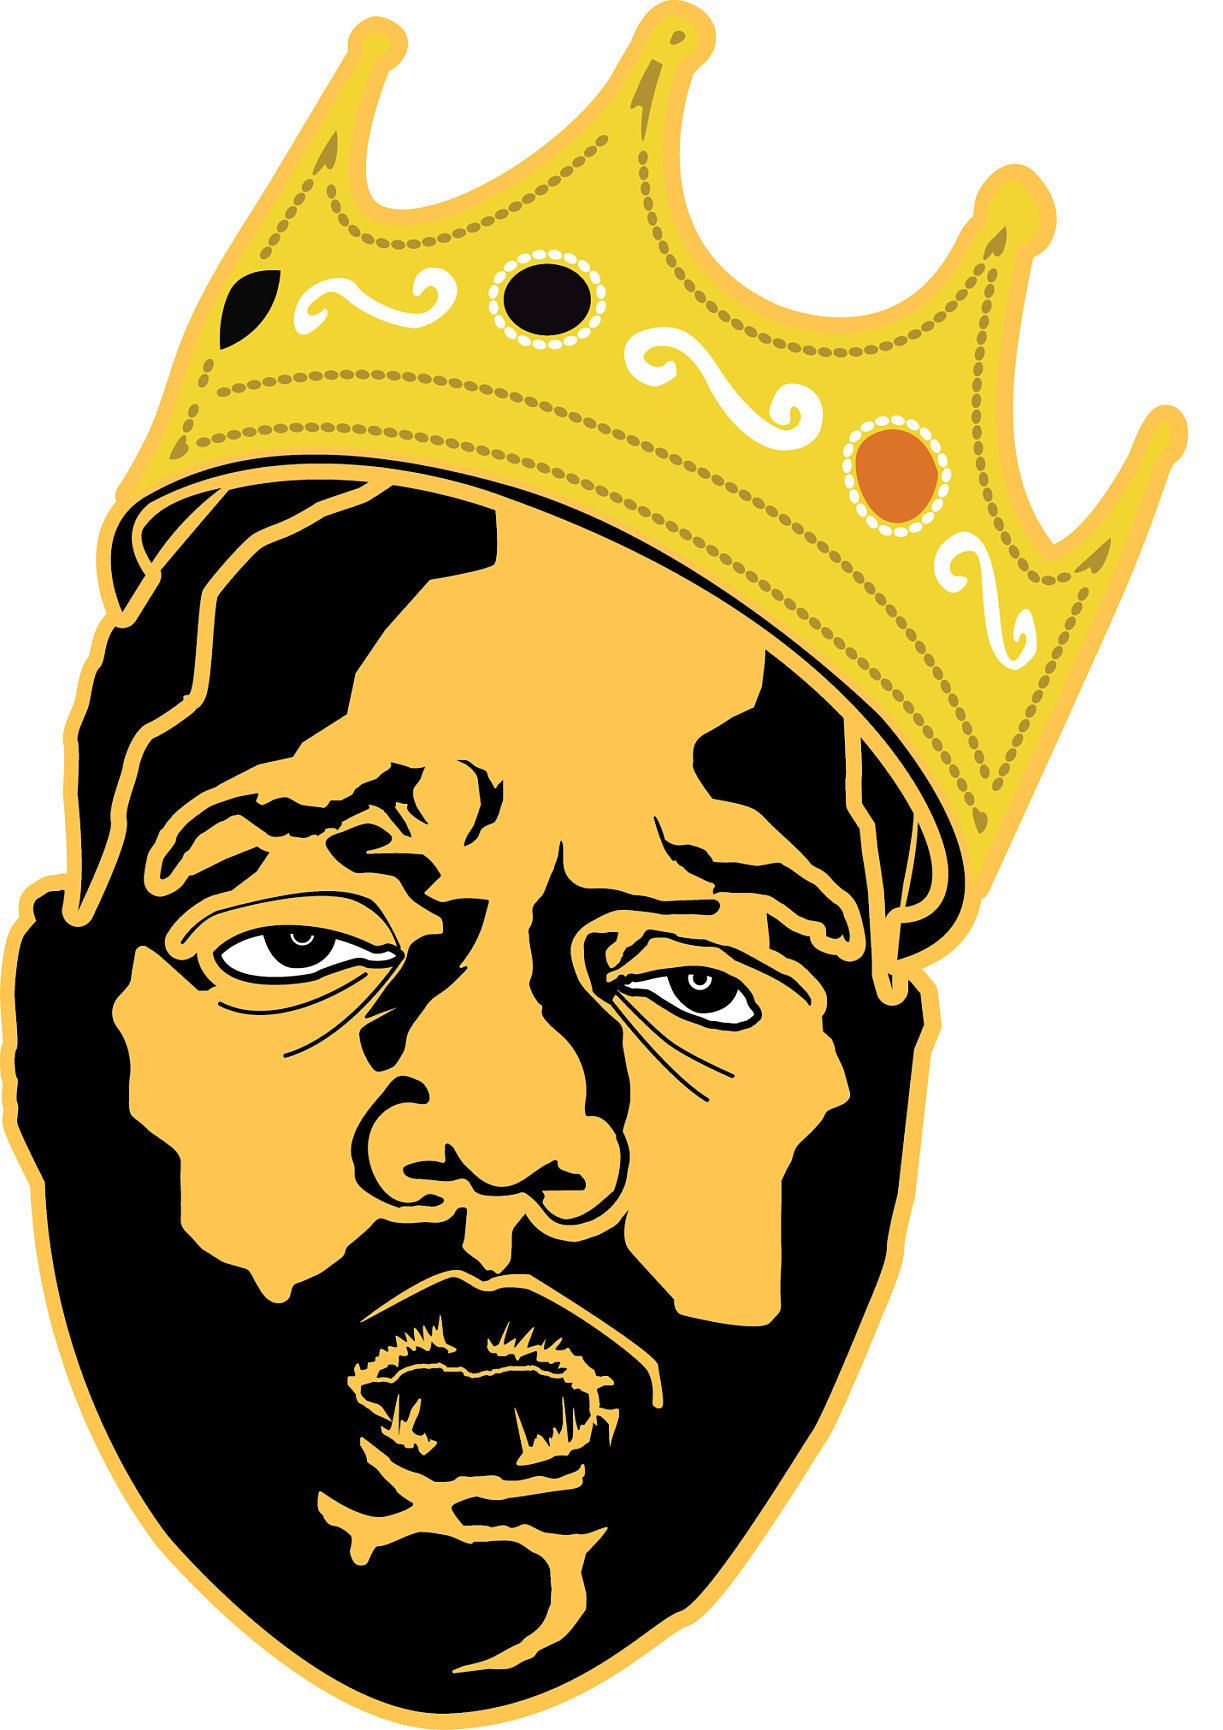 Biggie smalls with crown clipart clip royalty free Notorious BIG SVG Cut File | Black Cap Etsy Shop in 2019 | Cutting ... clip royalty free